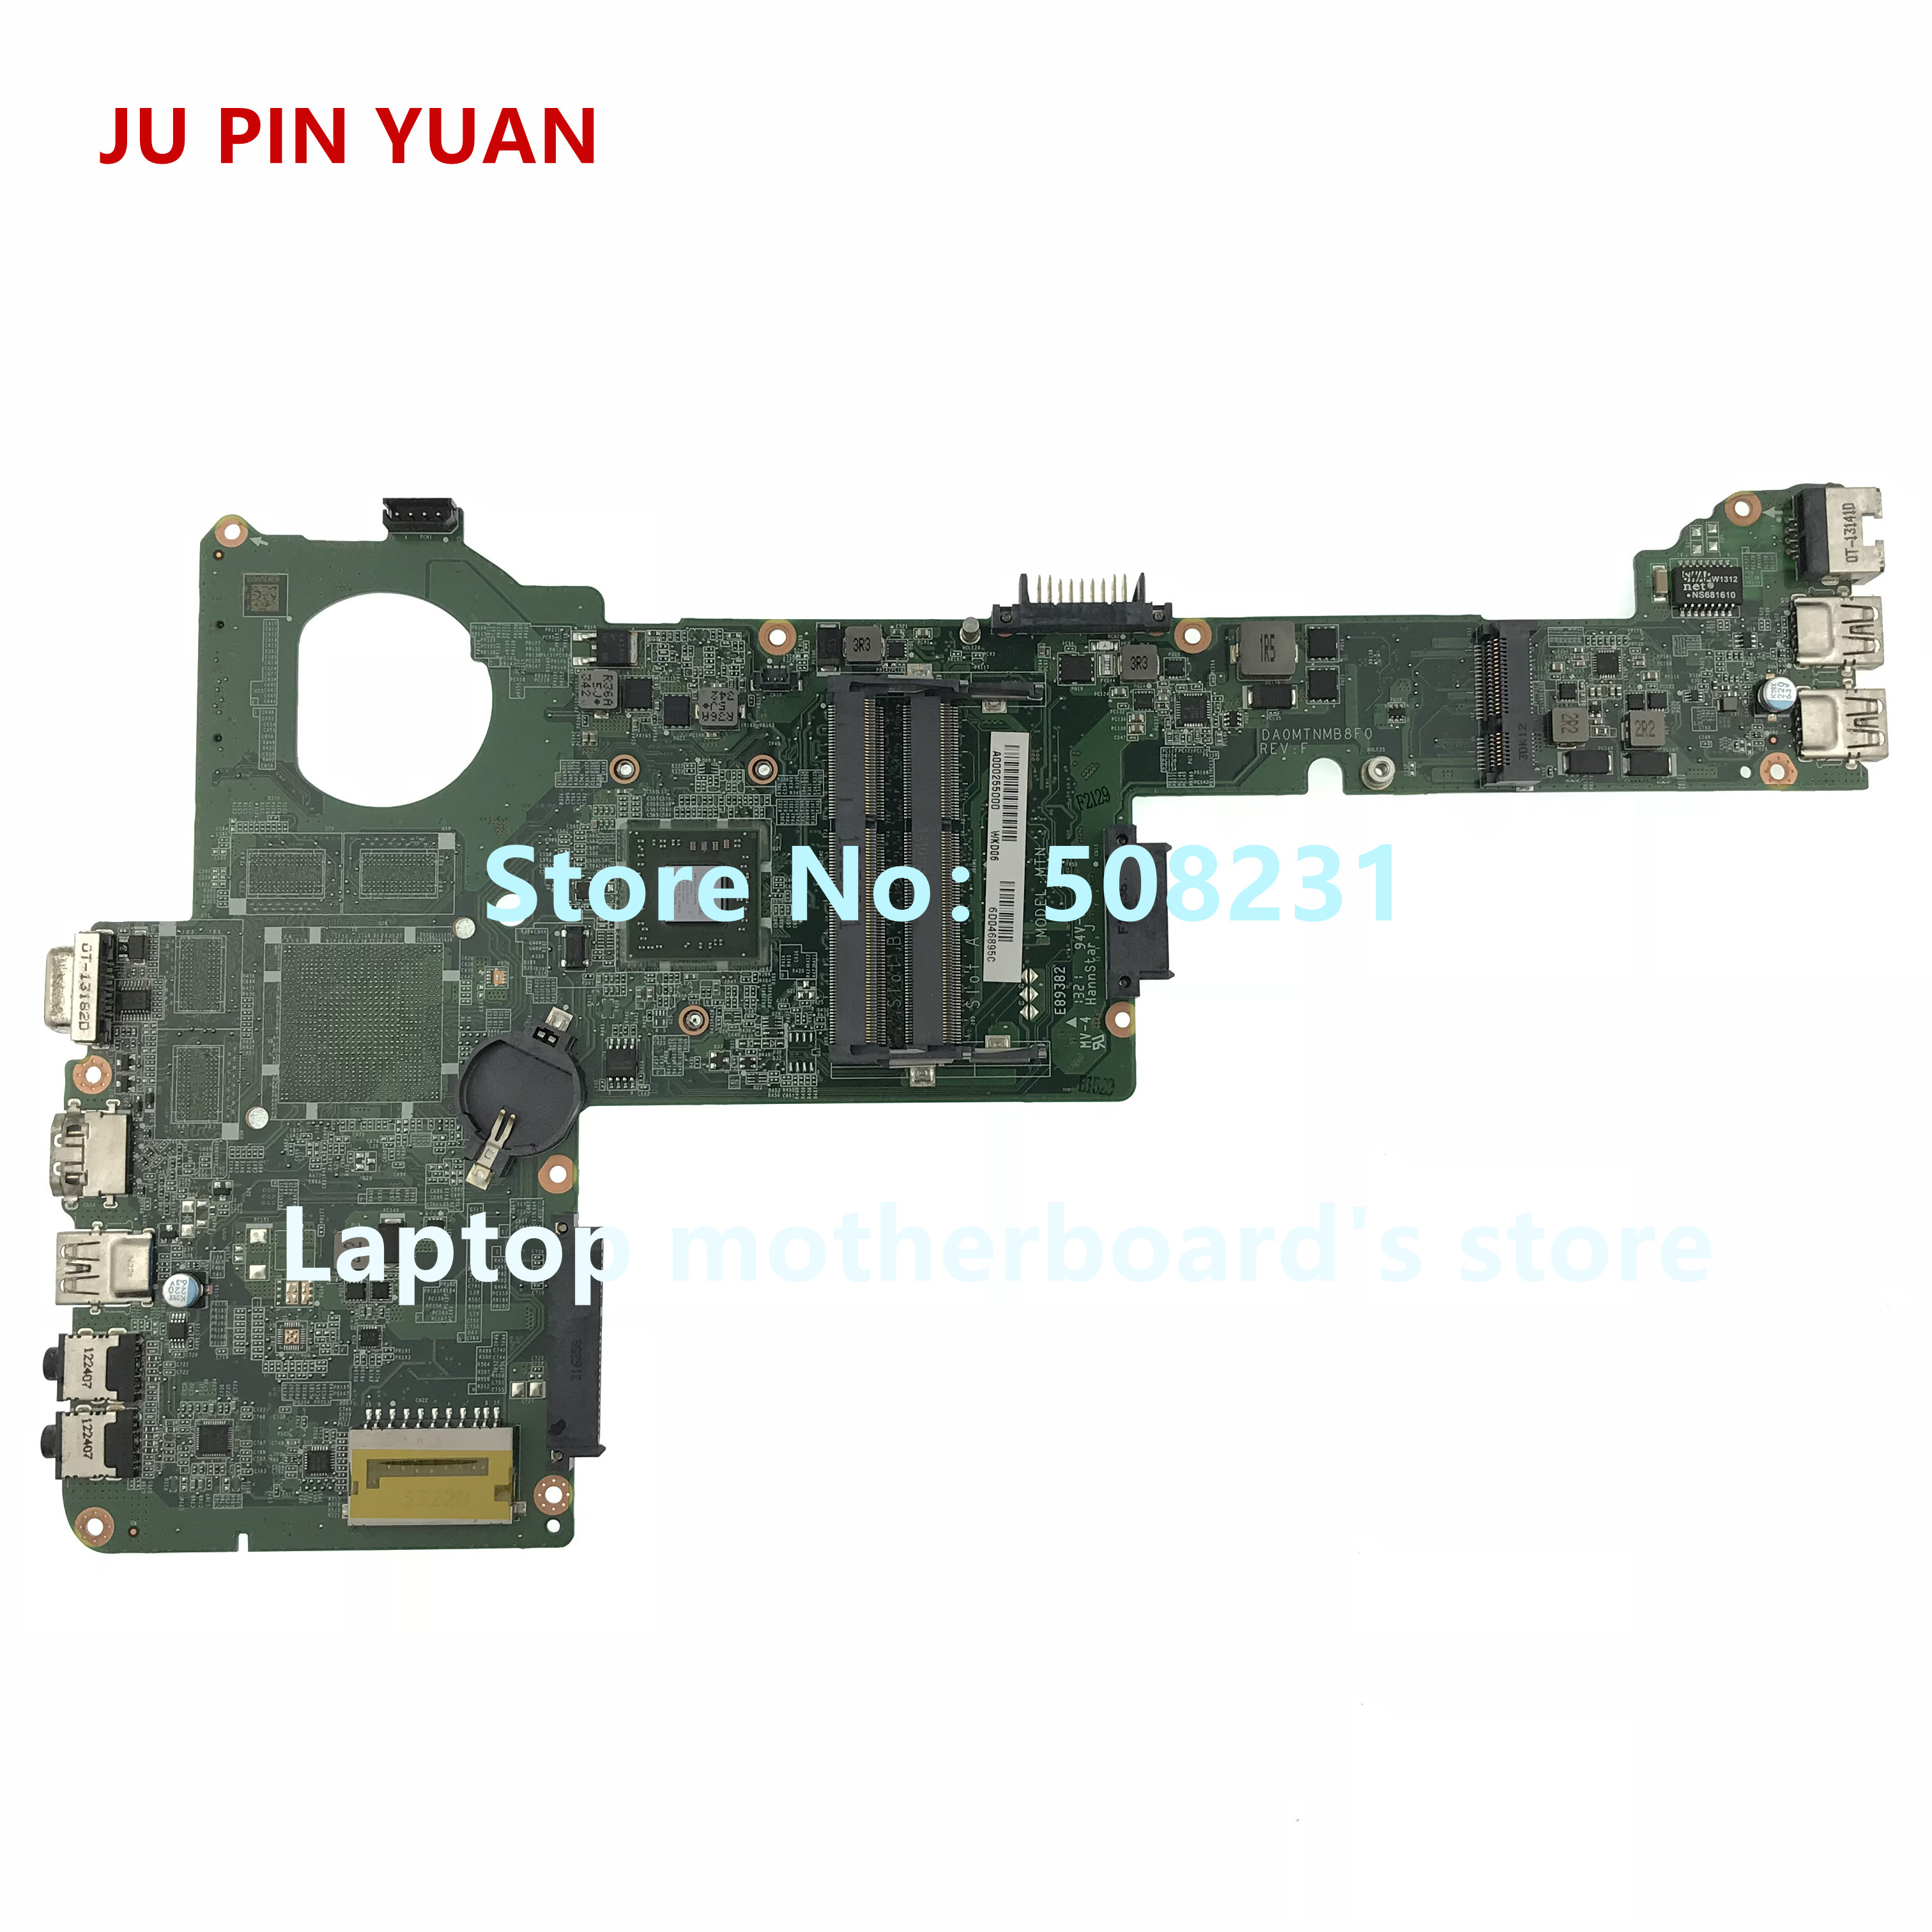 JU PIN YUAN A000255000 DA0MTNMB8F0 For Toshiba Satellite C40D C40D-A motherboard with A4-5000 CPU All functions fully TestedJU PIN YUAN A000255000 DA0MTNMB8F0 For Toshiba Satellite C40D C40D-A motherboard with A4-5000 CPU All functions fully Tested